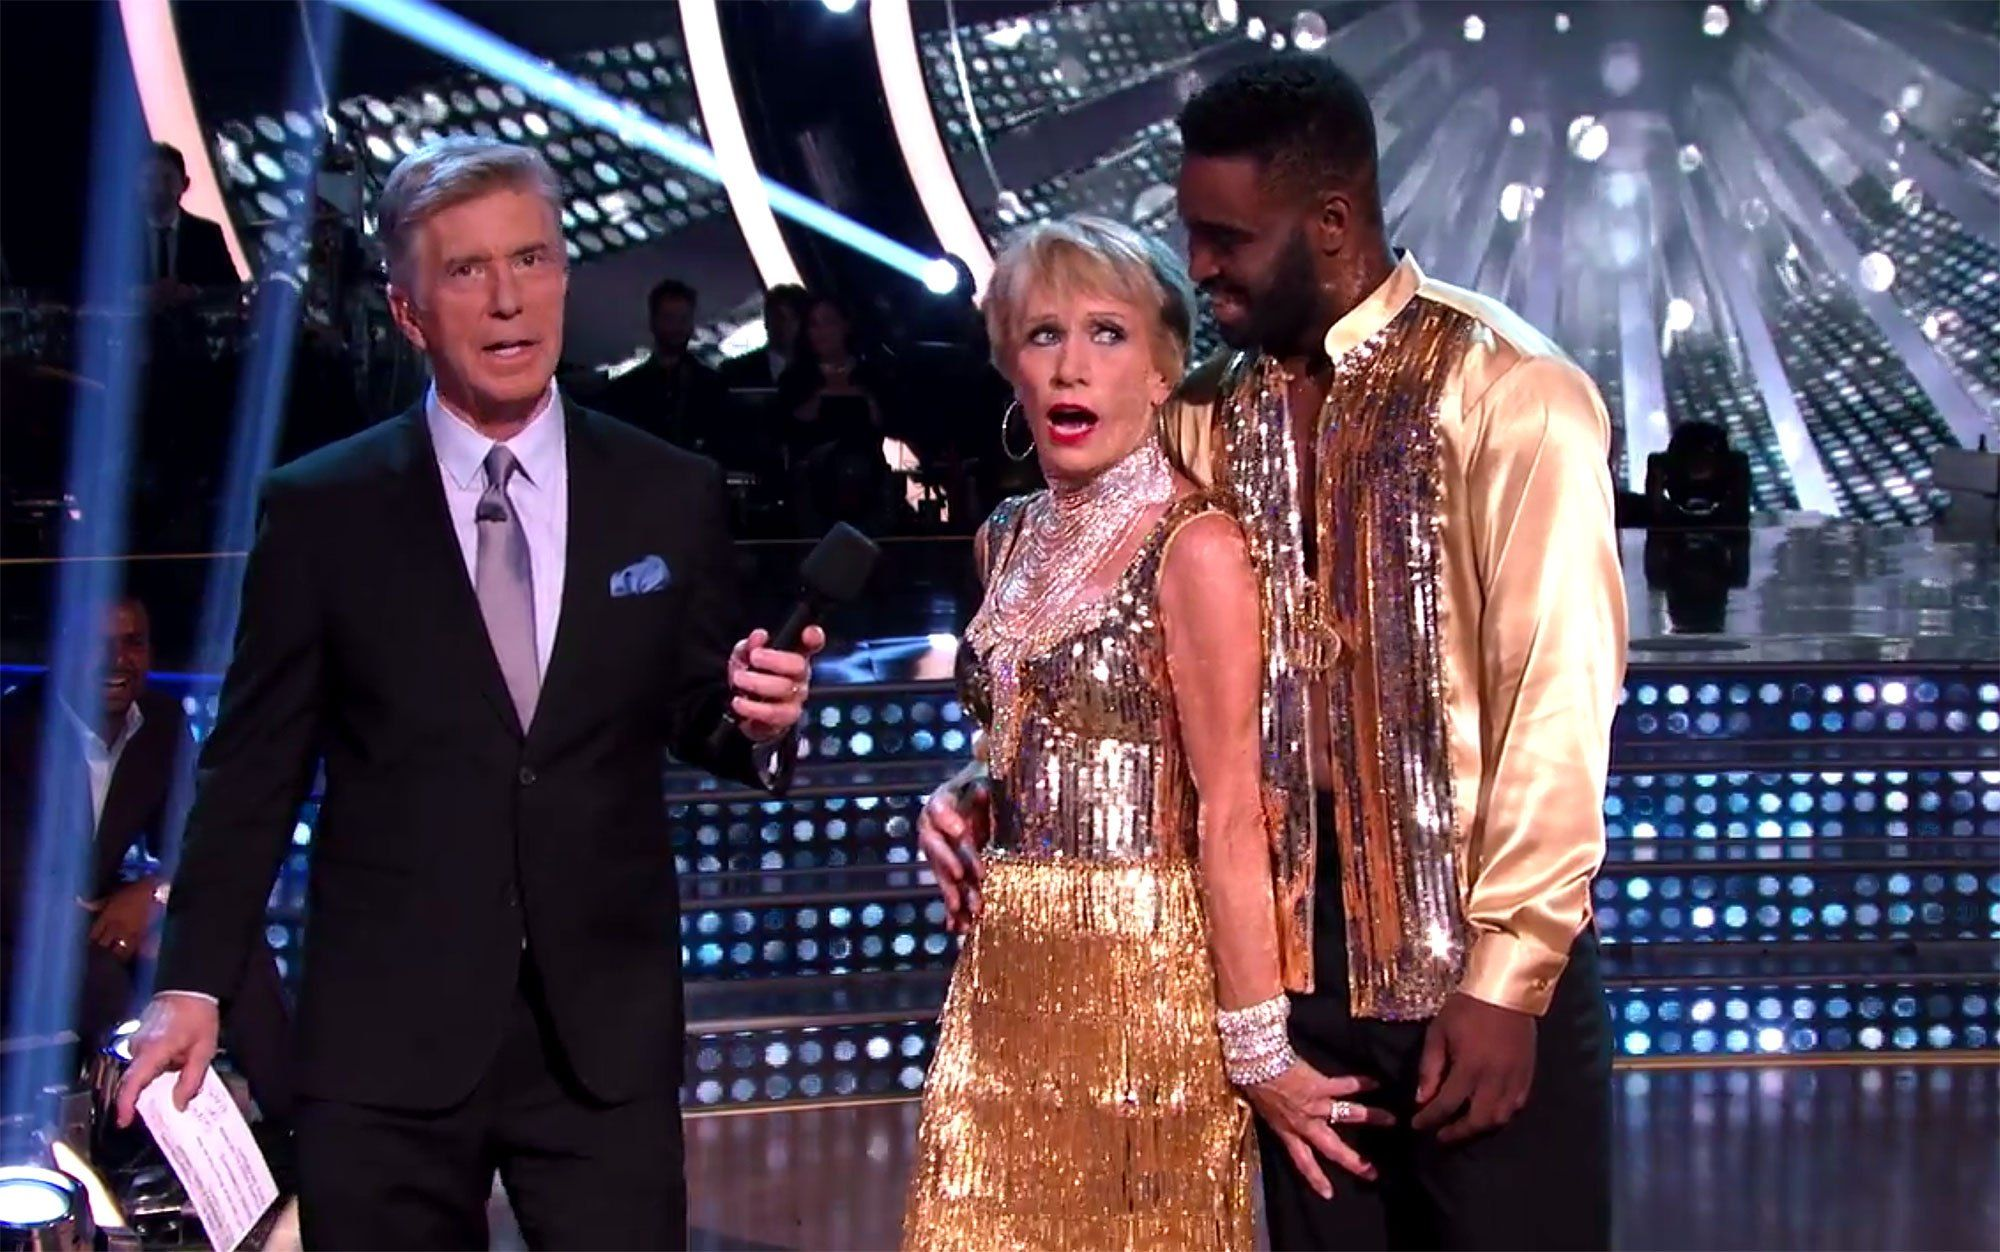 Shark Tank's Barbara Corcoran Gets Very Handsy with DWTS